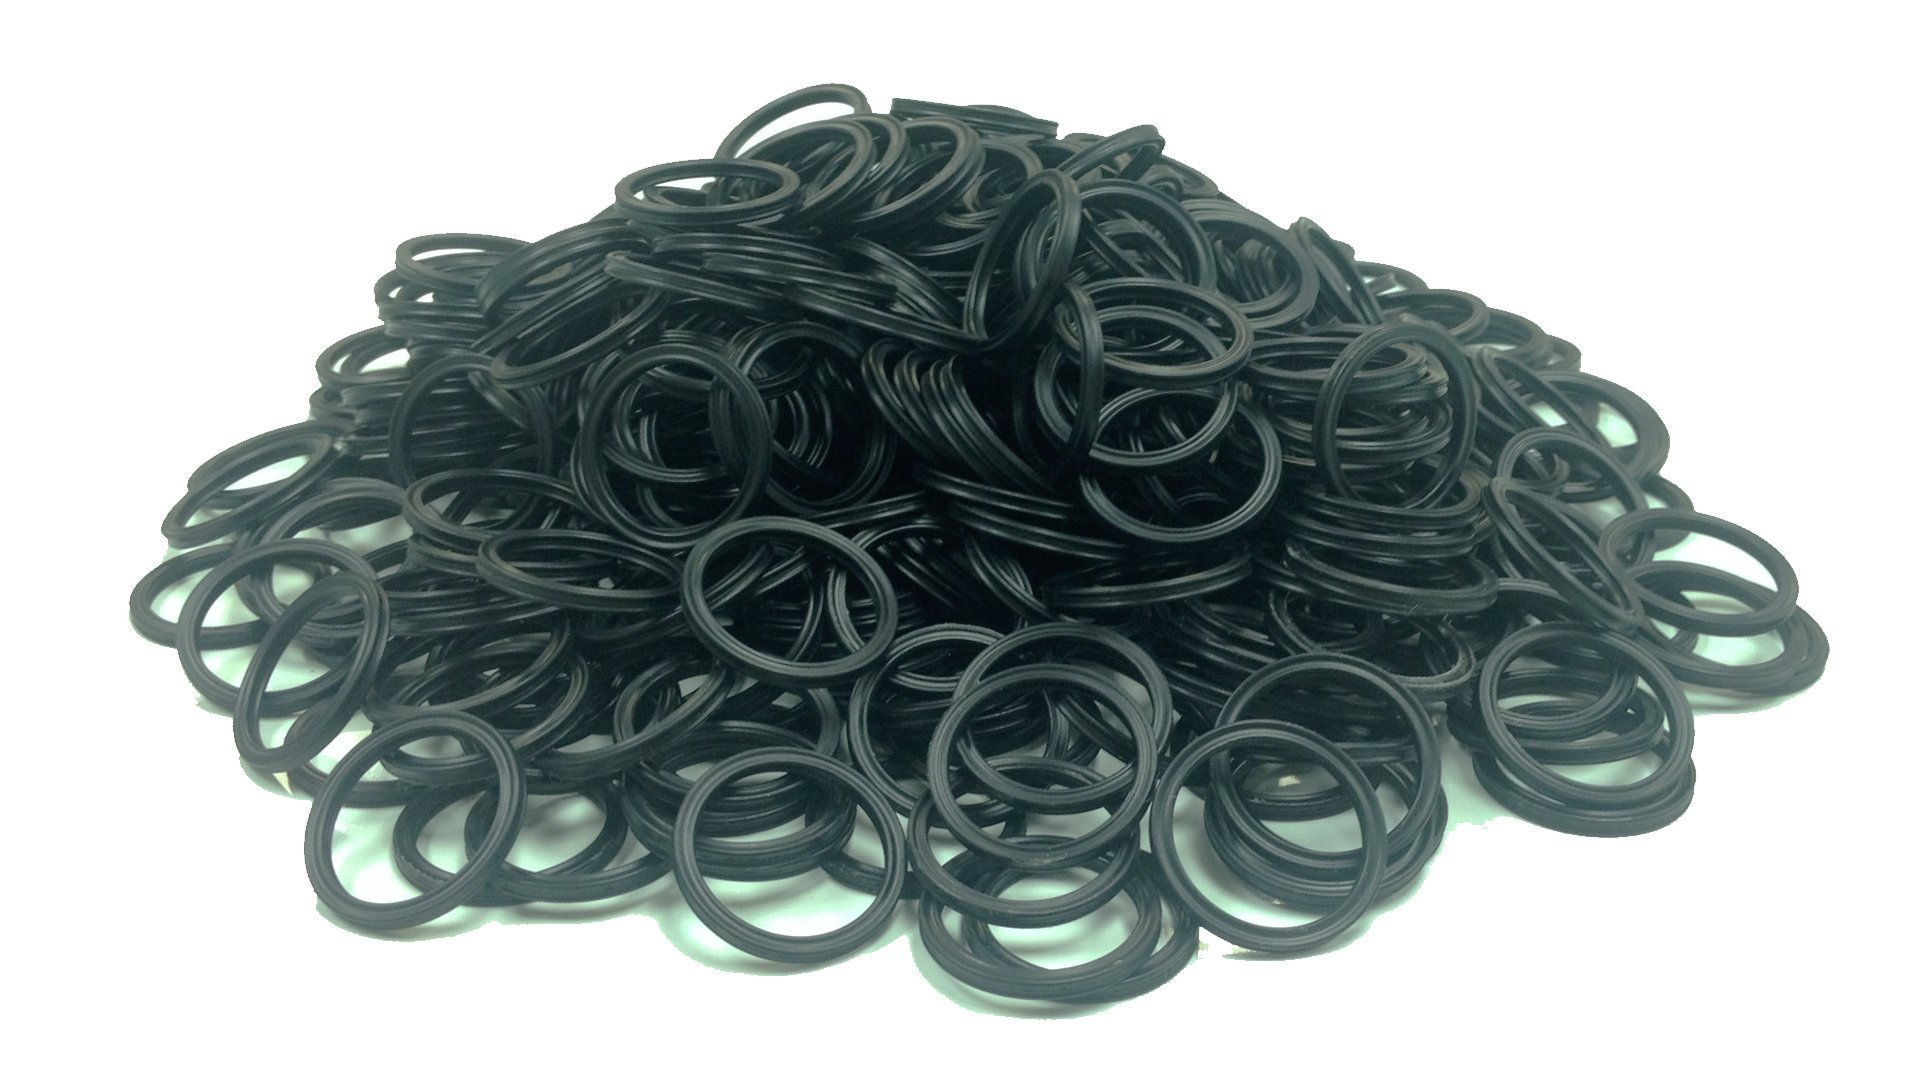 1//32 ID Round 90A Durometer 001 Viton O-Ring 1//32 Width Pack of 50 Black 3//32 OD